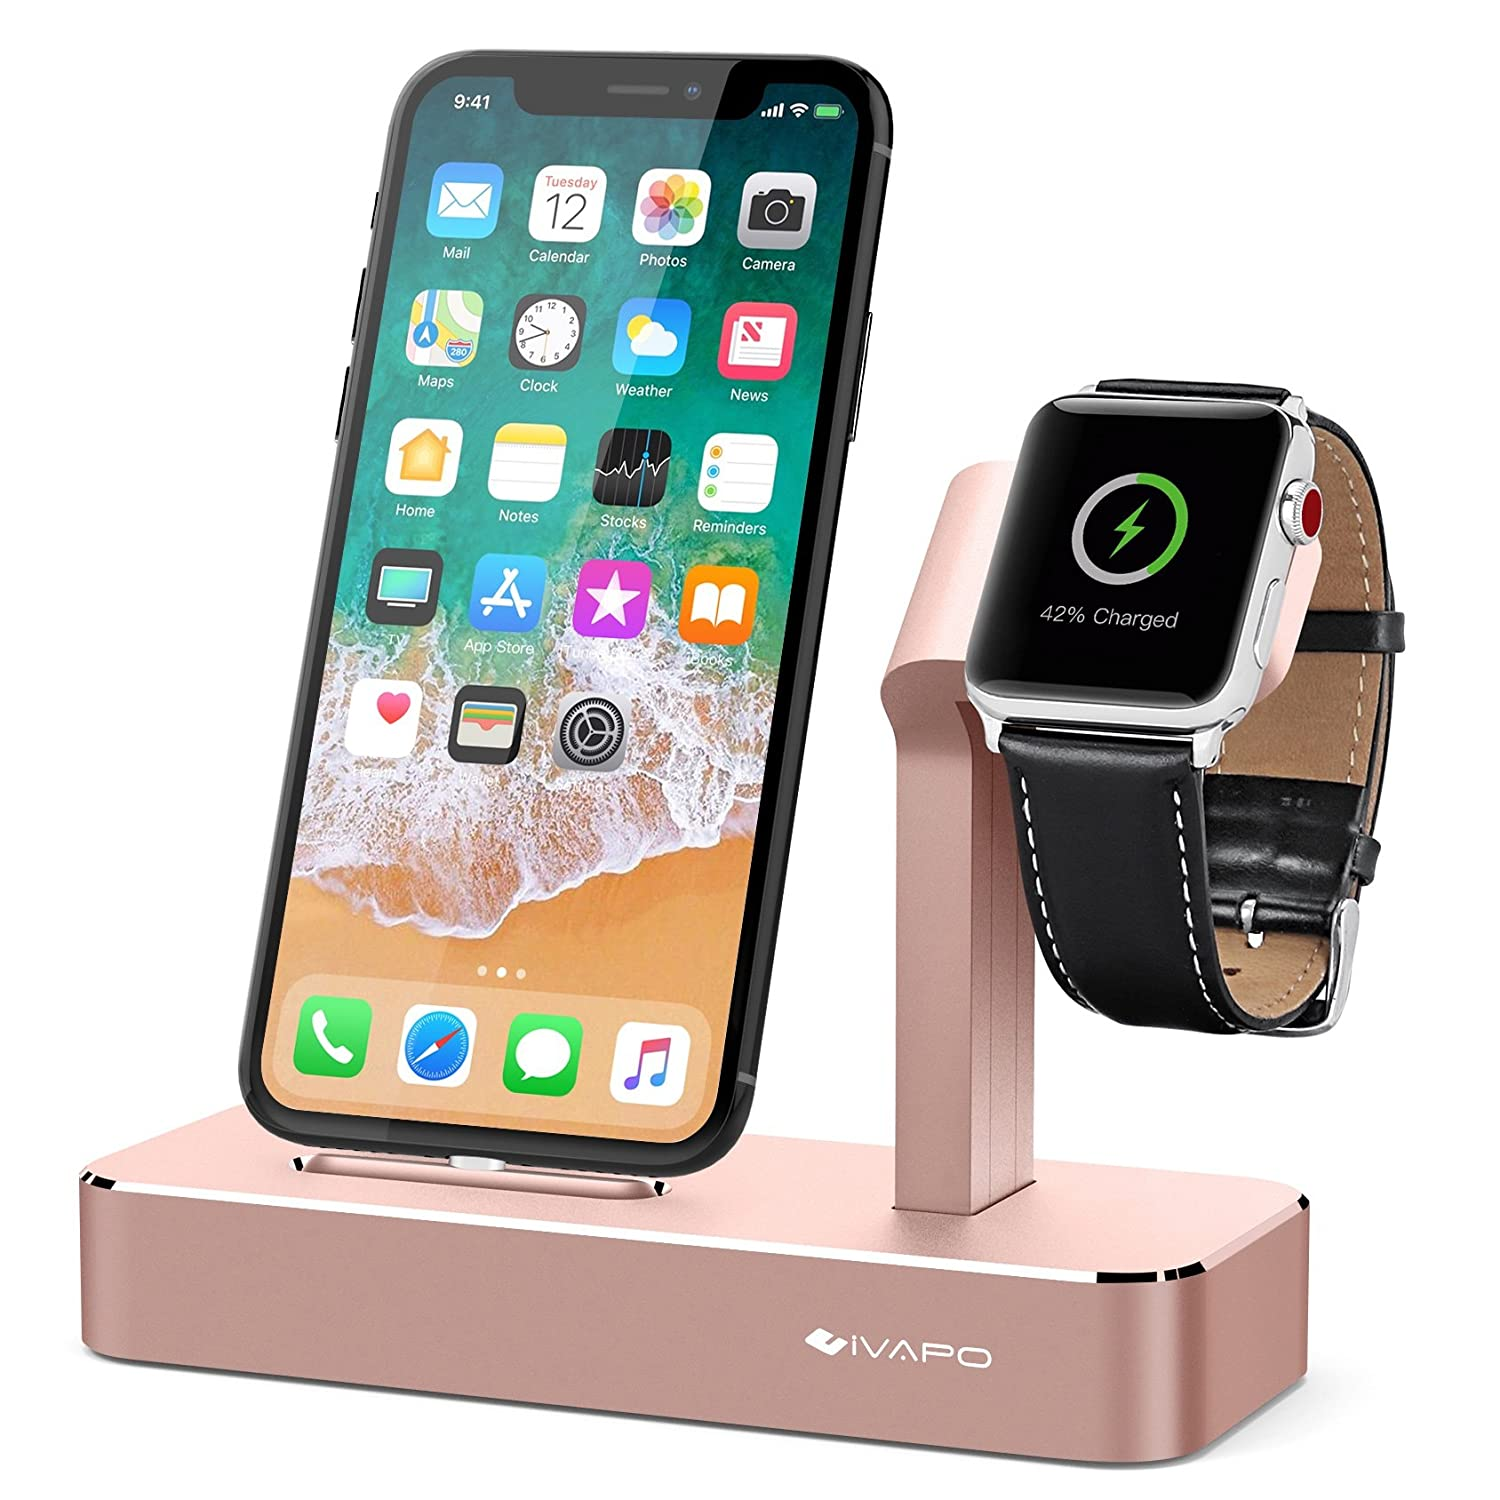 iVAPO 2 in 1 Supporto per Apple Watch Series 3 / Apple Watch Series 1 / Apple Watch Nike + Apple Watch Series 2 / iPhone X / iPhone 8 Plus / iPhone 8 / iPhone 7/ iPhone 6S Plus / iPhone SE / iPhone 5S (Rosa d'oro)